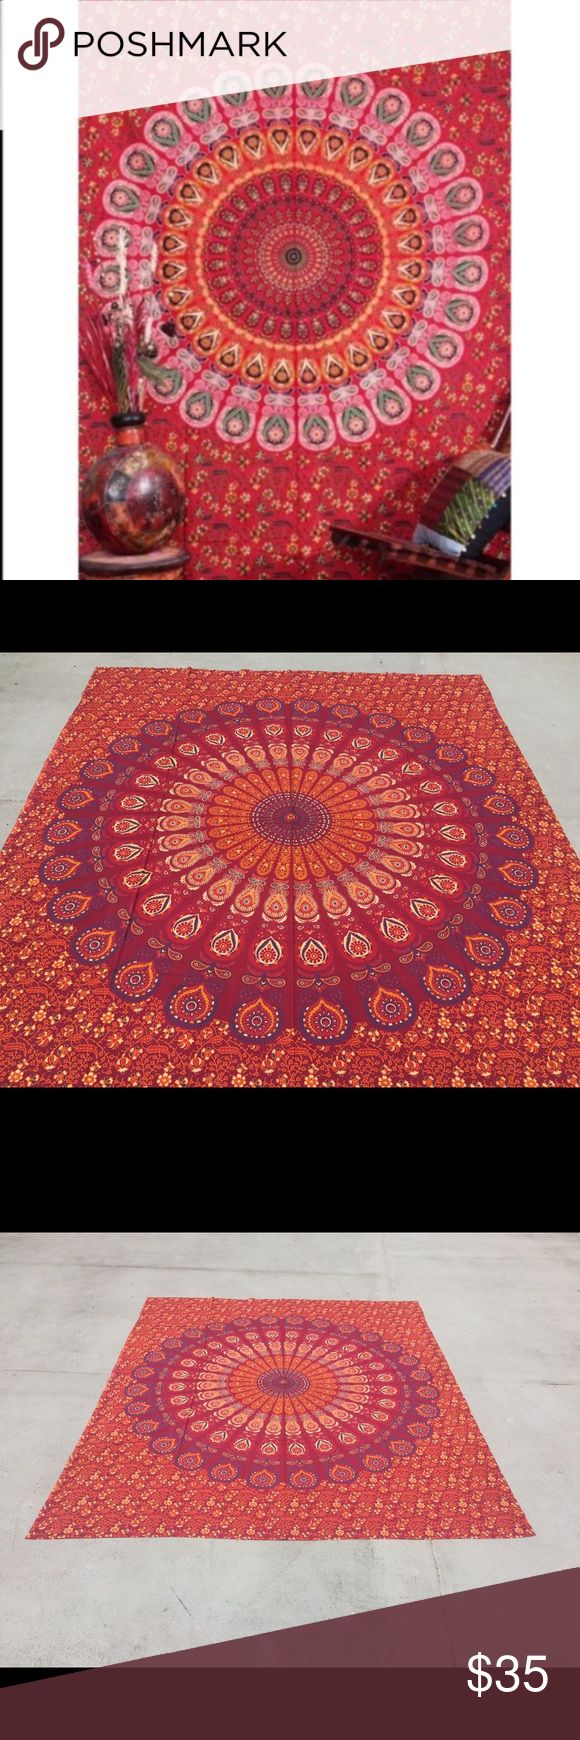 """🎁Wall Decor birthday gift thanksgiving present🎉 Brand new.Handmade with natural dyes.   Uses: bed spread, couch spread, curtains, wallhangings, Celling decor, beach mat, picnic mat, table cloth, yoga & meditation.  Size: 90"""" X 84"""" inch ( Queen bed)   Material;100% Cotton  Wash: cold wash   #festival #bohohome #bohochic #bohostyle #hippylife #hippiekid #gypsylife #tapestry #mandala #yogamat #mandala #burningman, #birthdaygift, #beachtowel #bedspread #walldecor #gift #boho #hippy #gypsy…"""